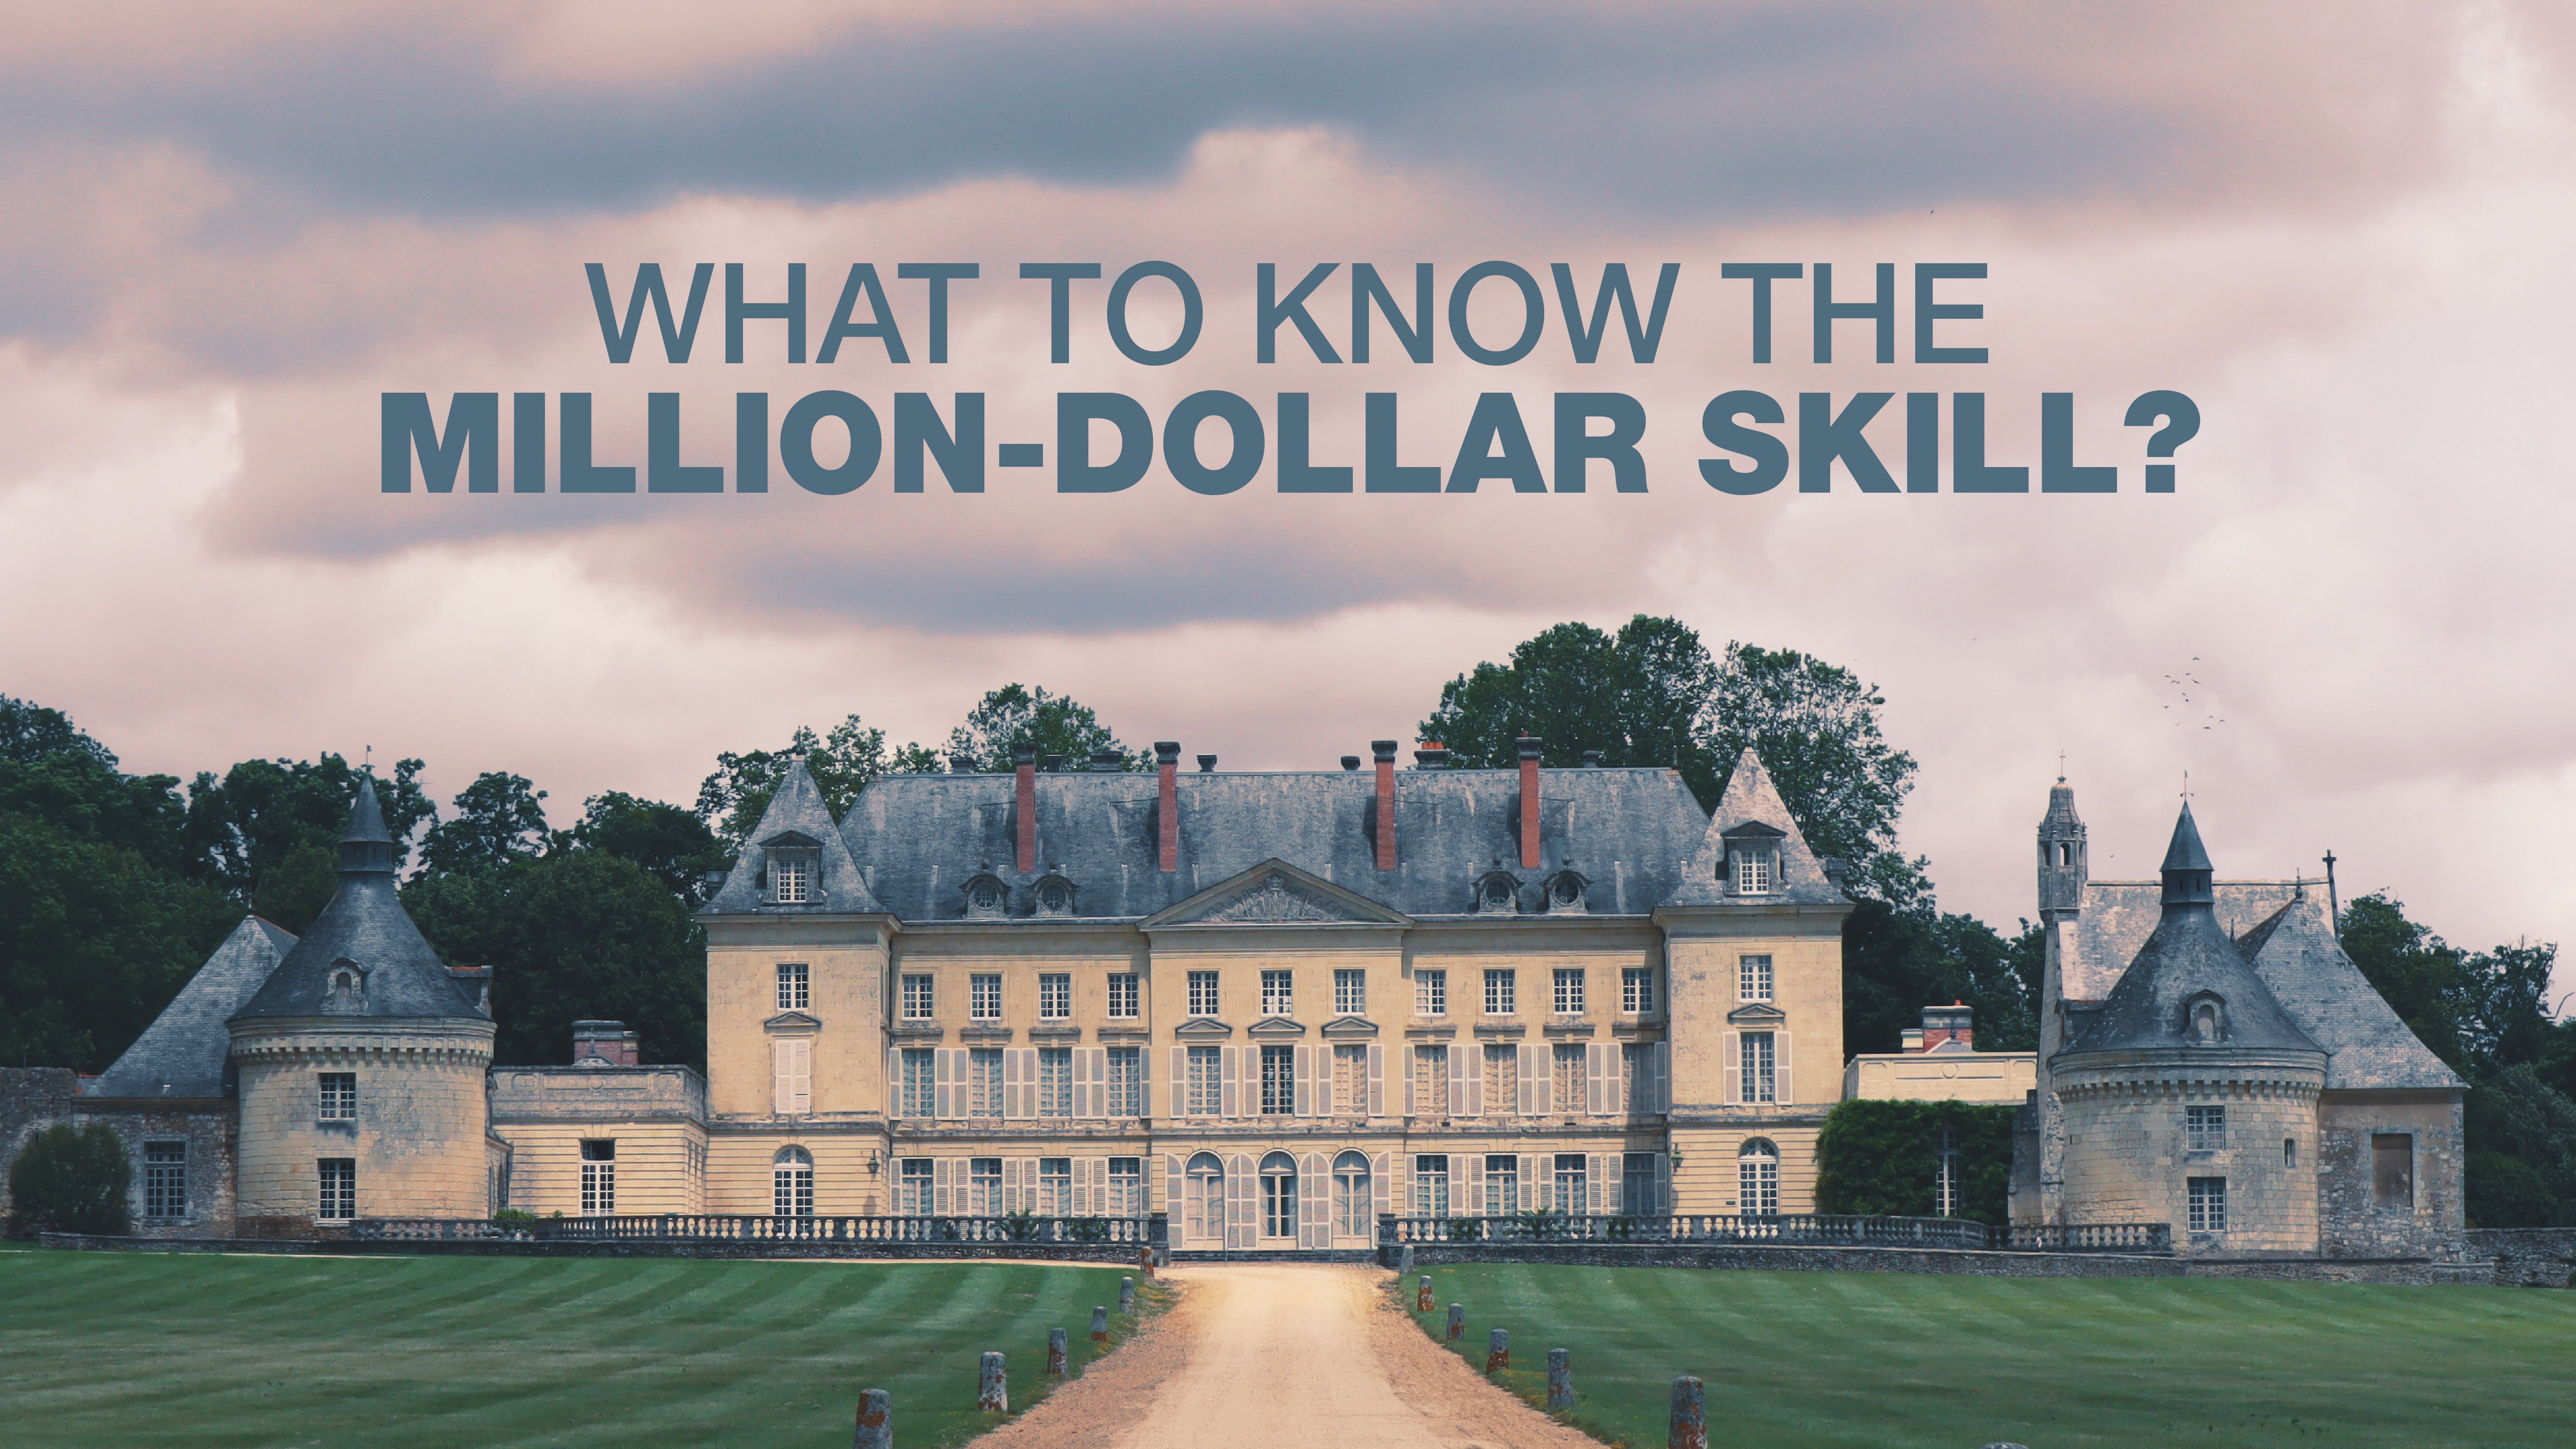 What to know the million-dollar skill?